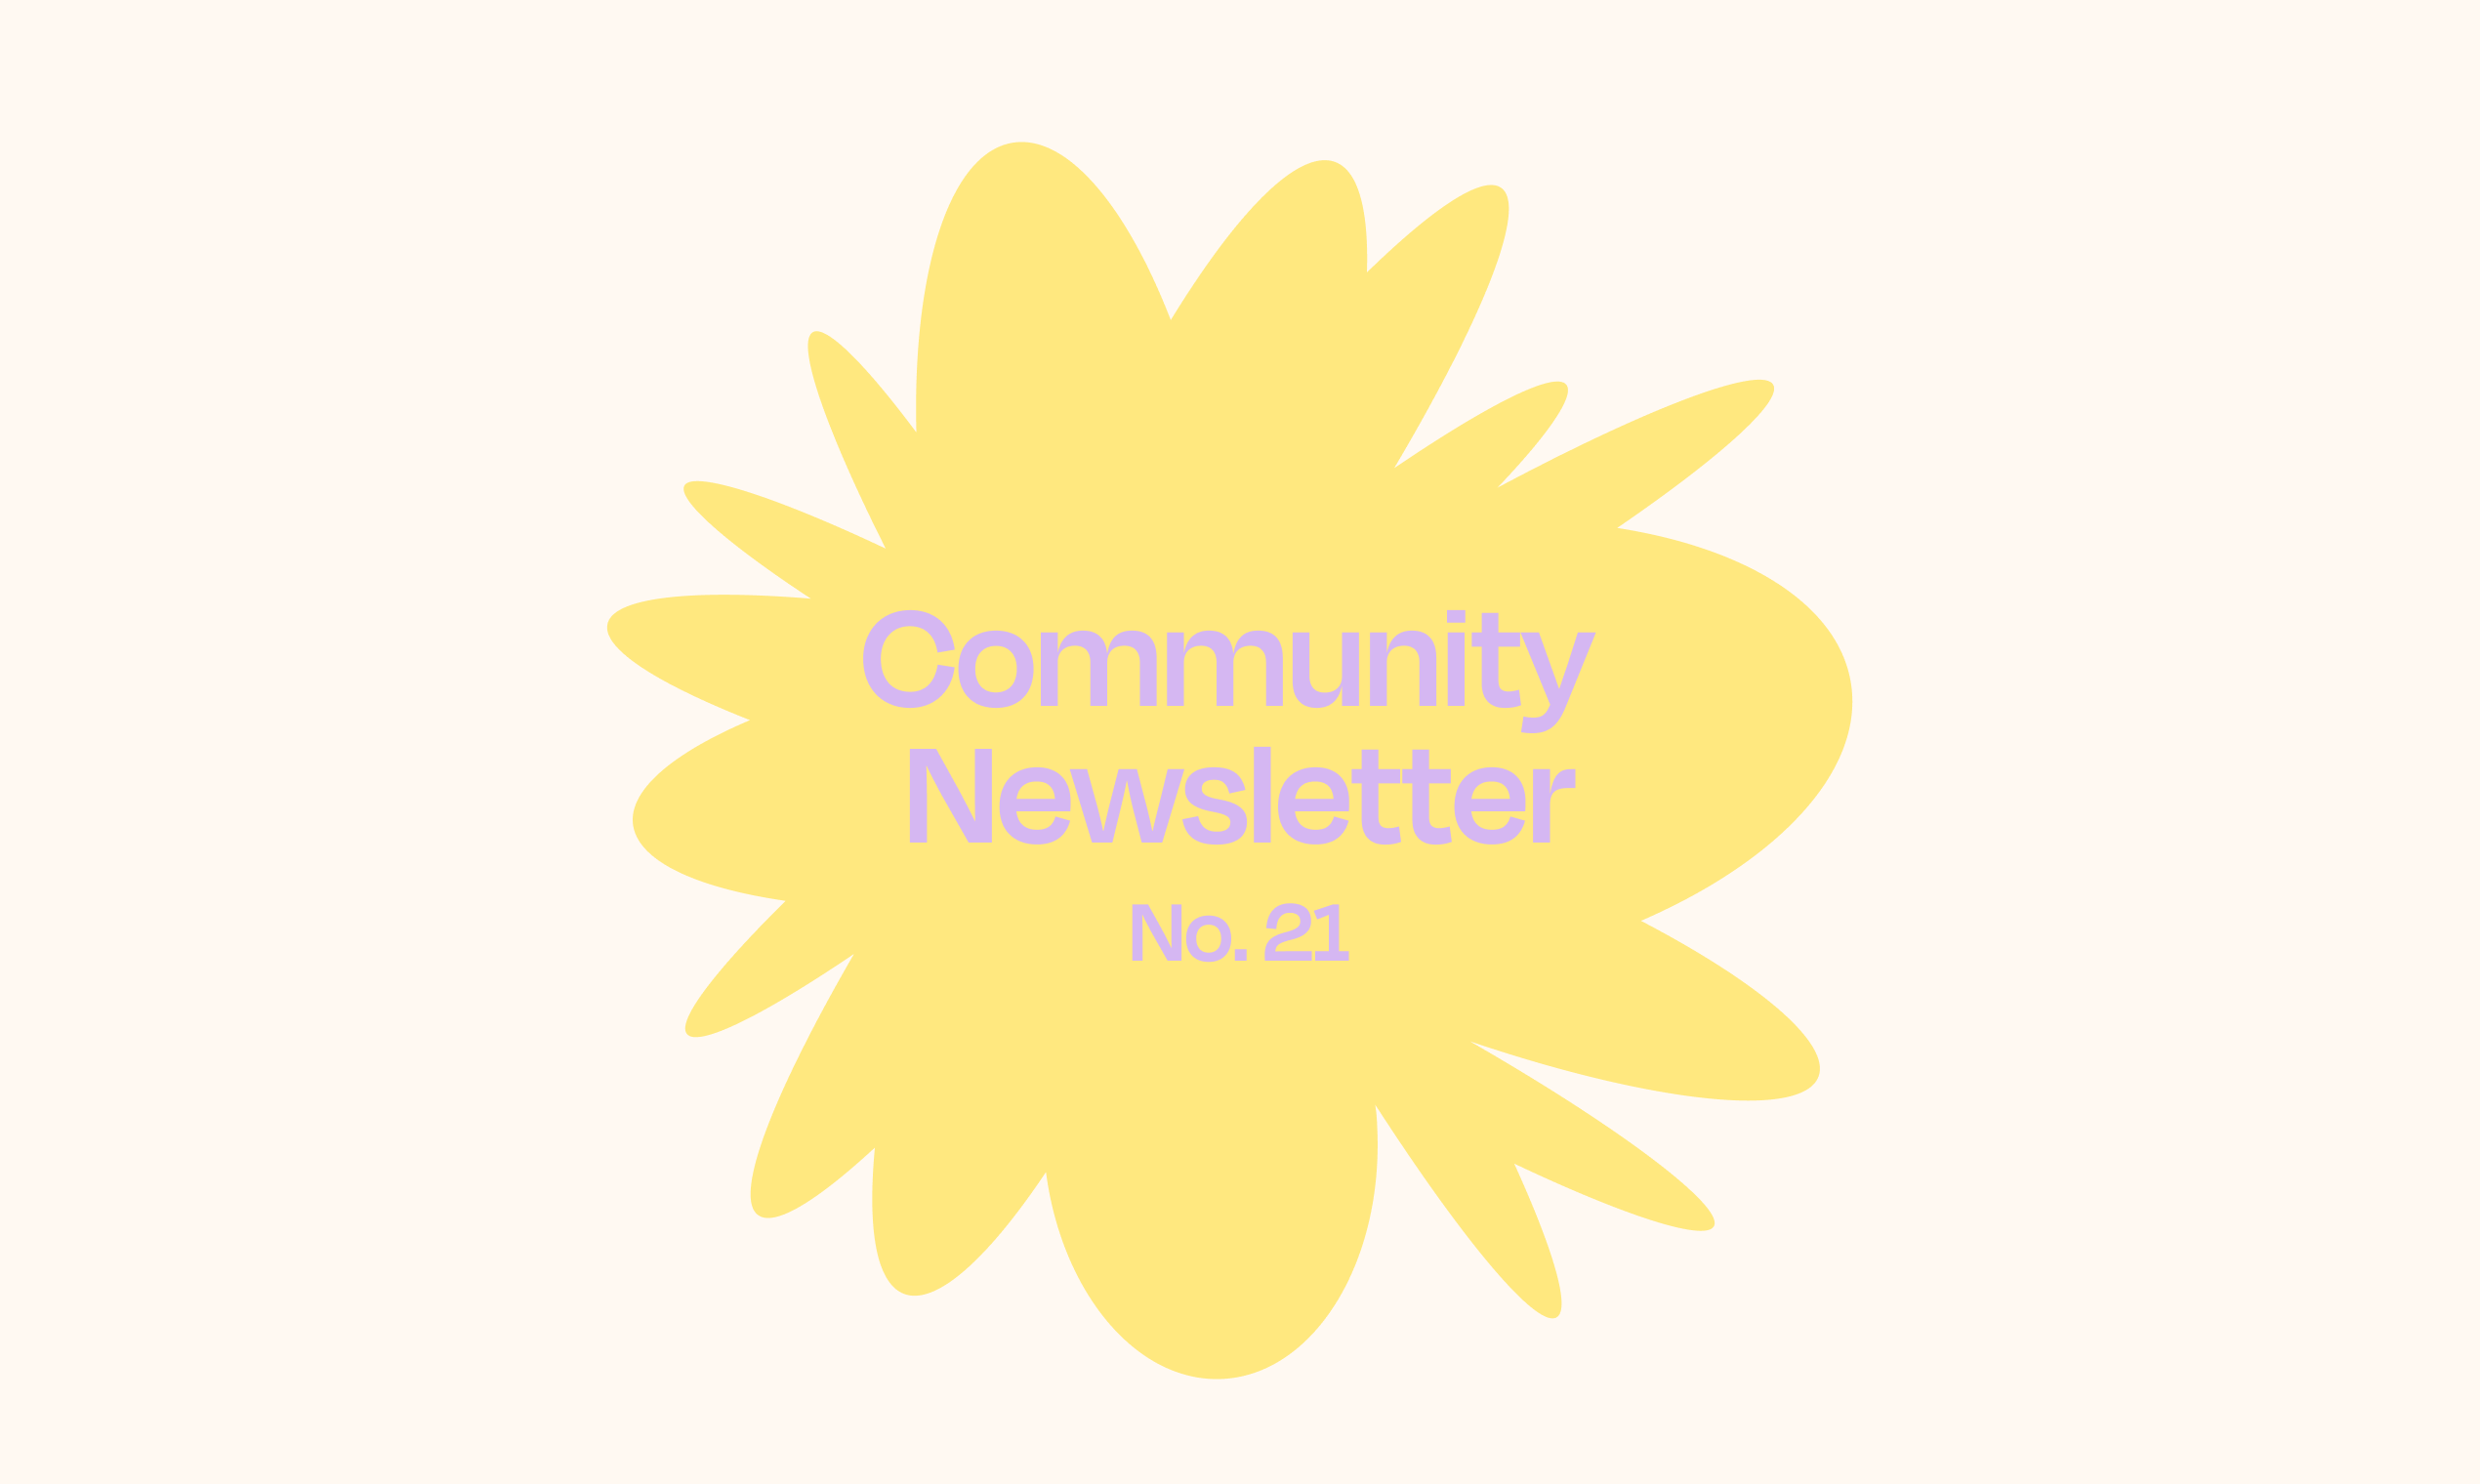 Norby Community Newsletter – No. 21